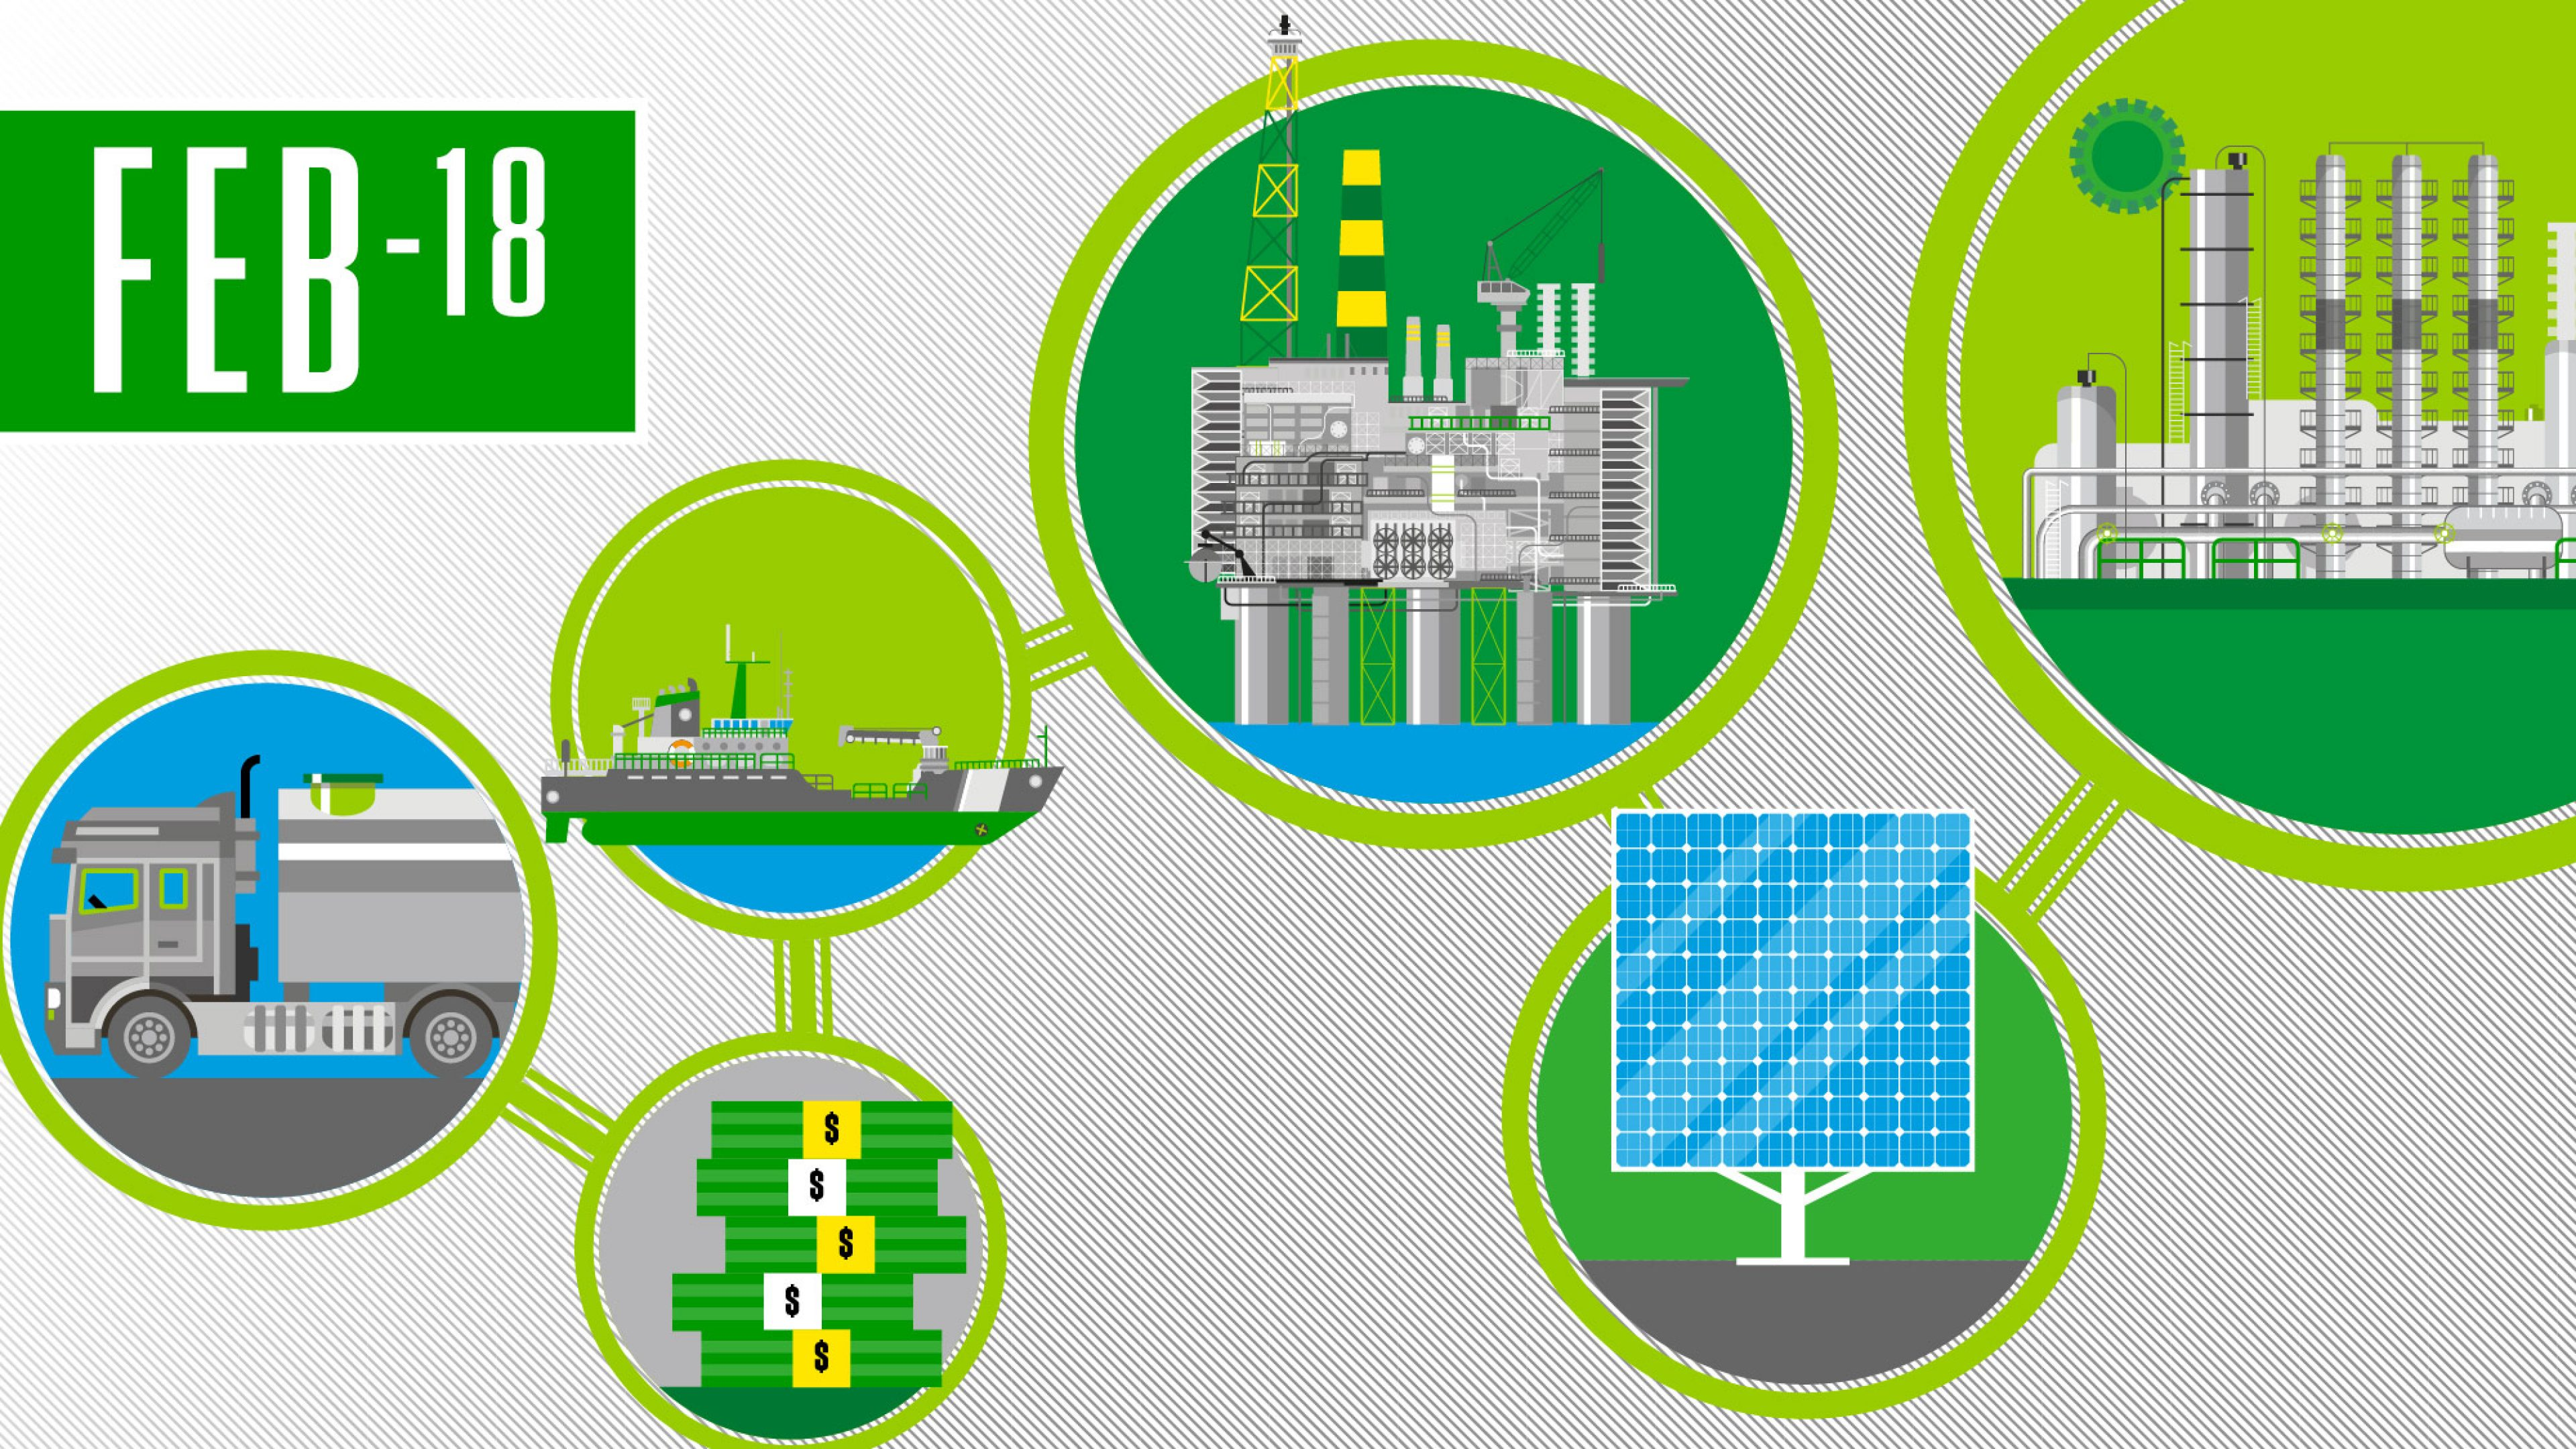 Graphics represent BP upstream, downstream and low carbon businesses